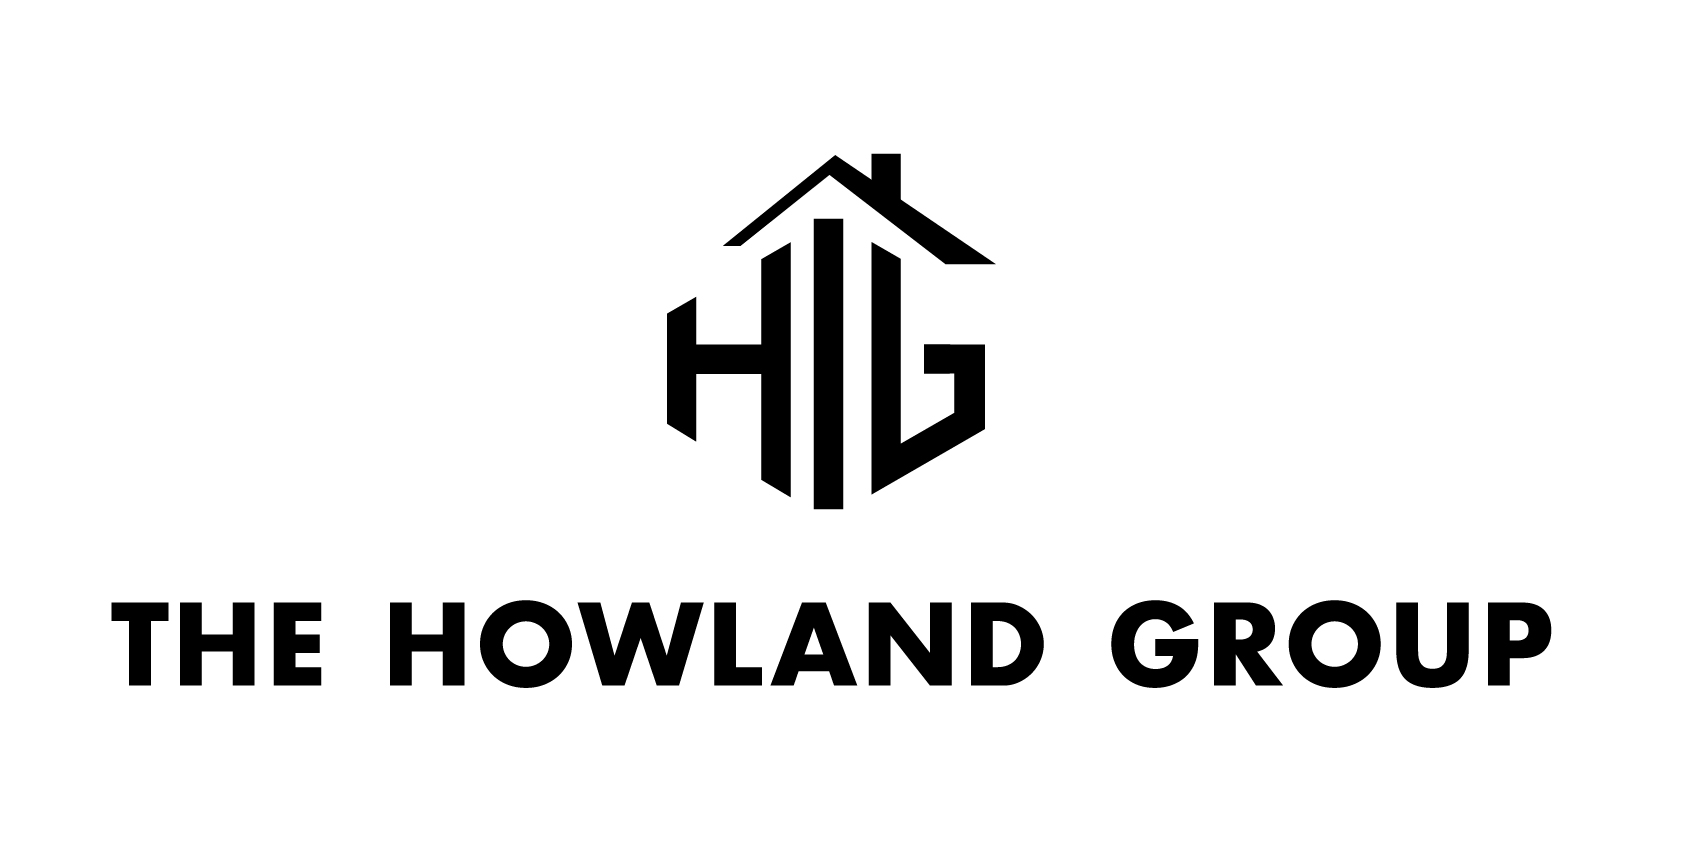 The Howland Group